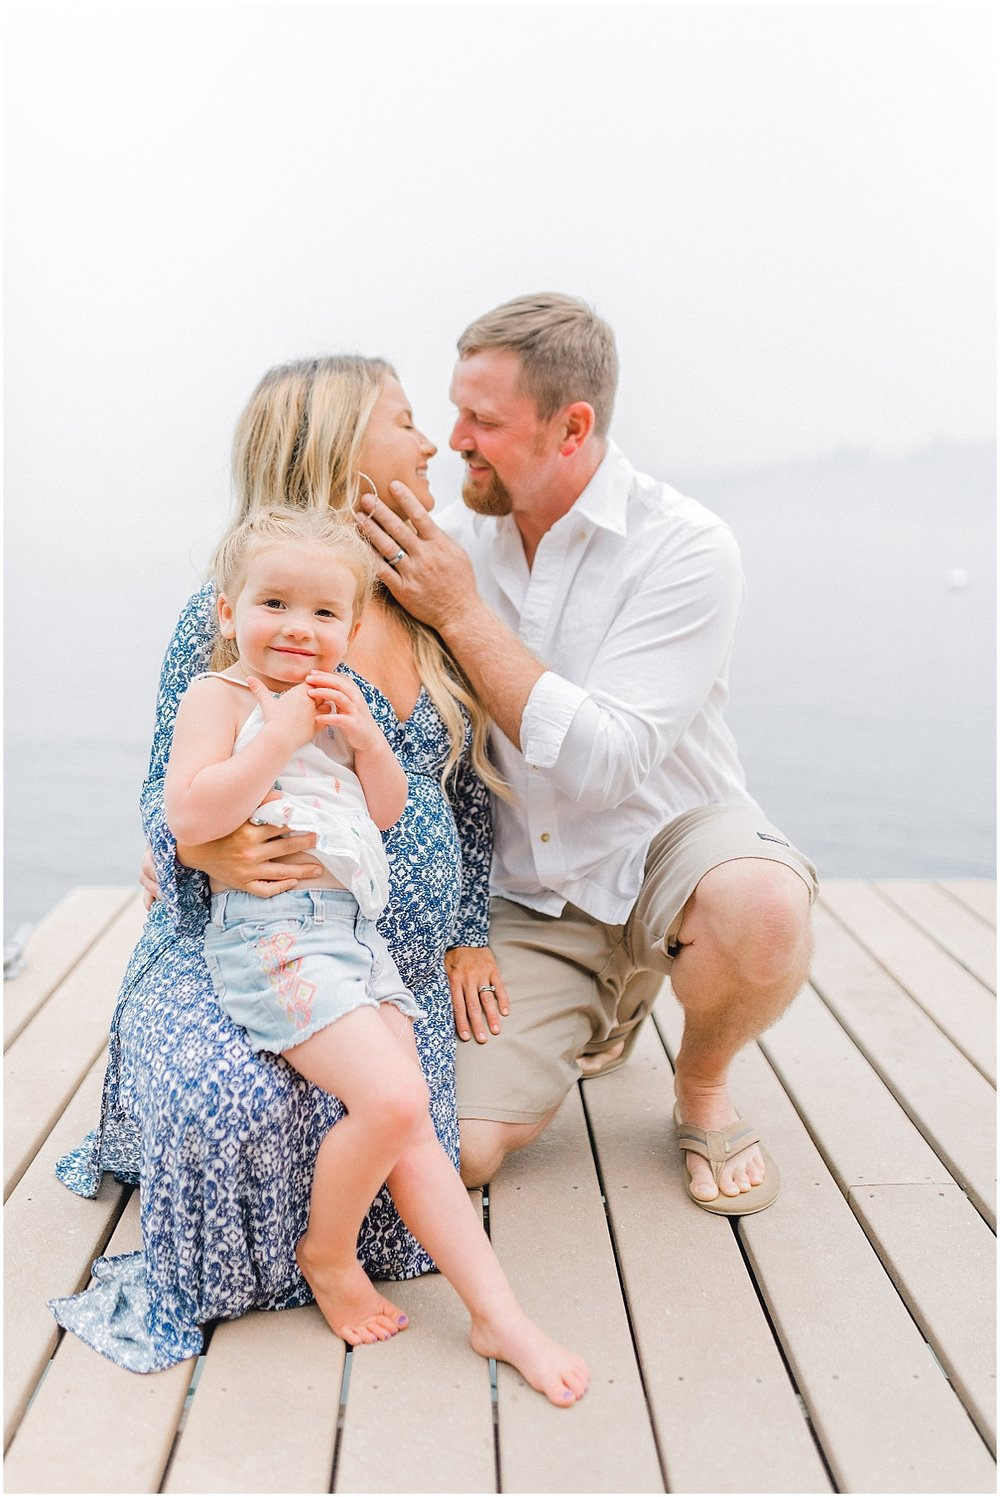 Emma Rose Company | PNW Family Portrait Photographer | Light and Airy Photography Style | What to Wear to Family Pictures | Kindred Presets | Lake Chelan Wedding Portrait Photographer_0085.jpg